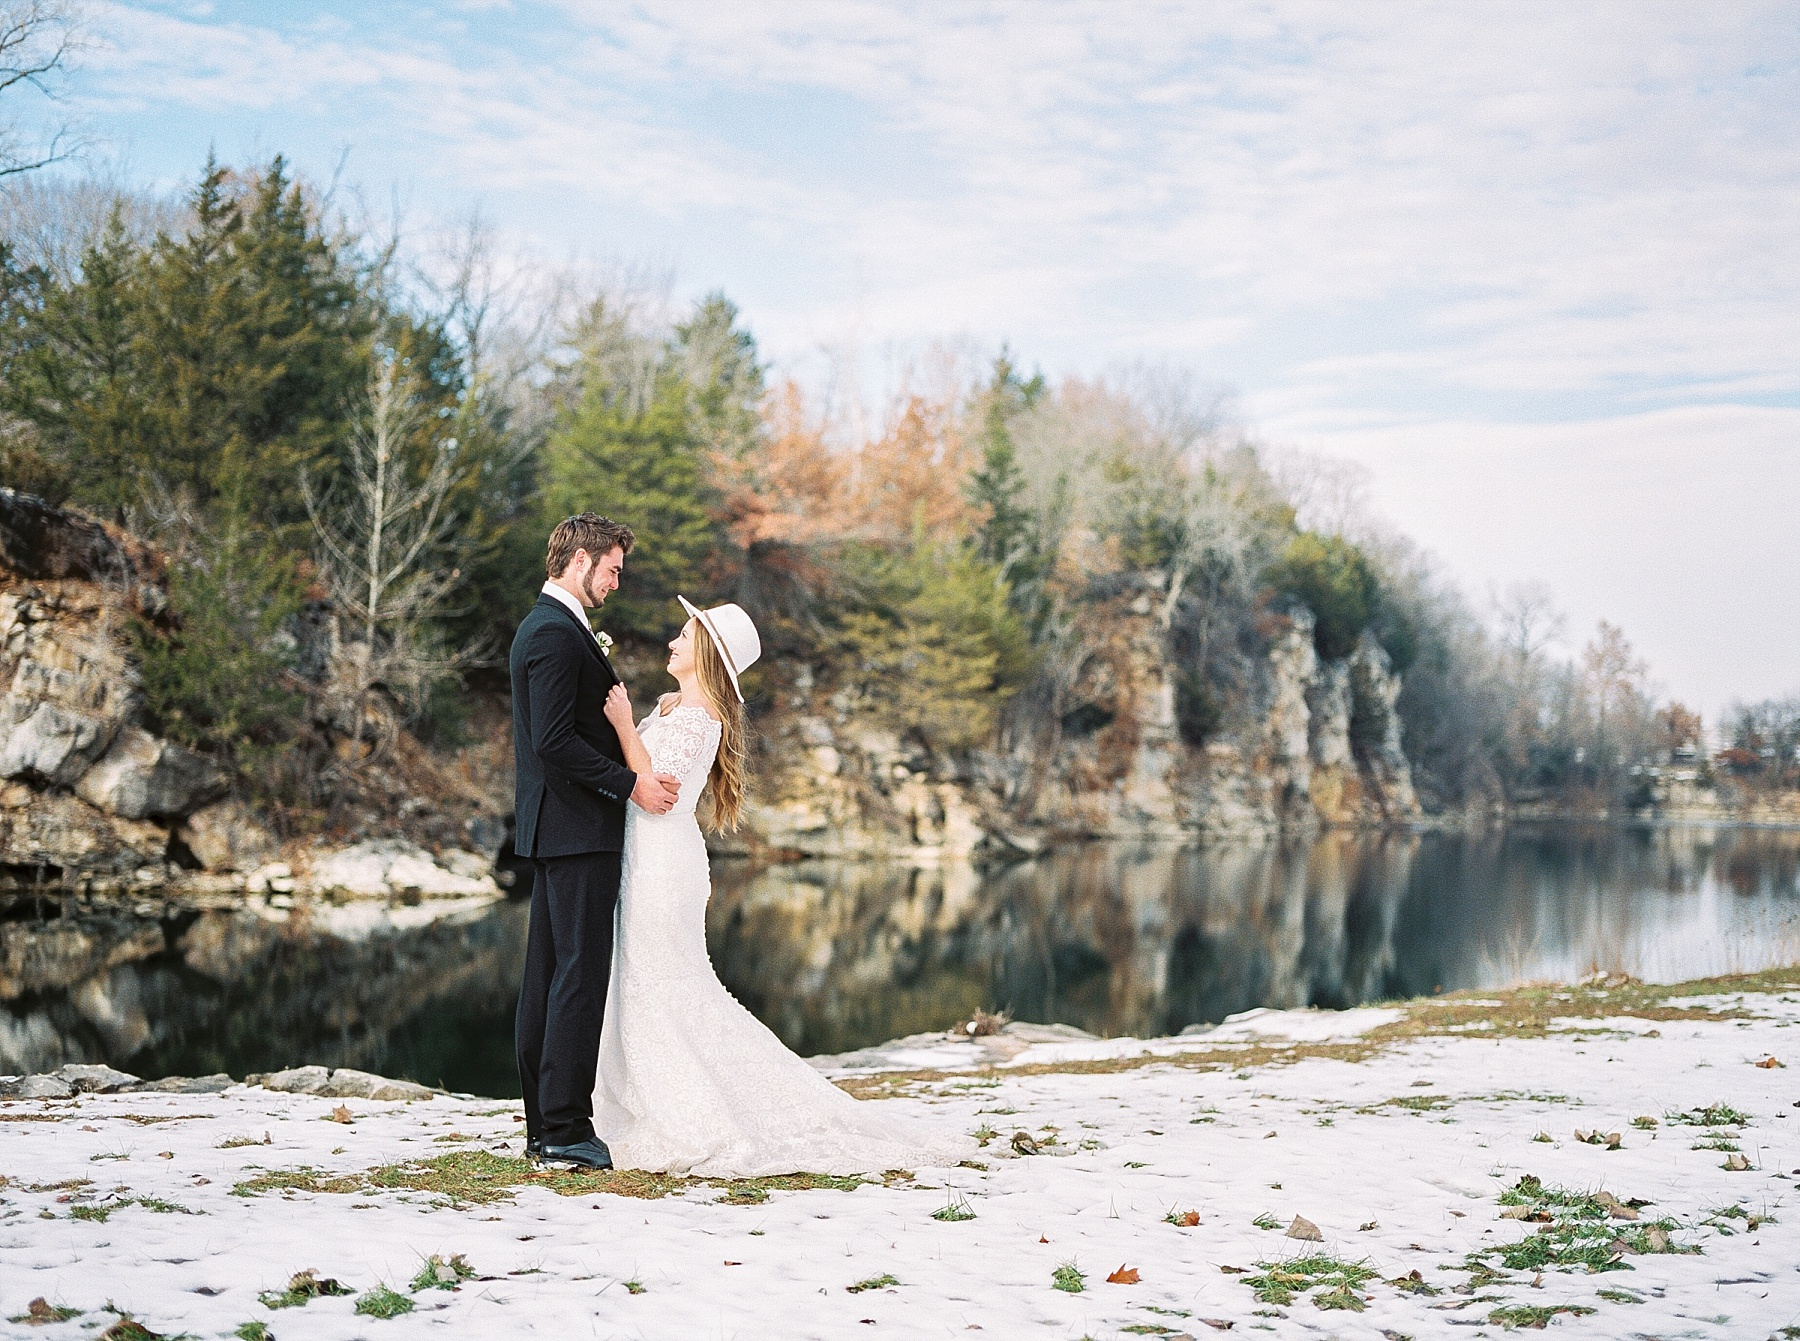 Snowy Winter Wedding at Wildcliff Events Lake With Earthy Jewel Tones and Organic Refined Style by Kelsi Kliethermes Photography Kansas City Missouri Wedding Photographer_0001.jpg